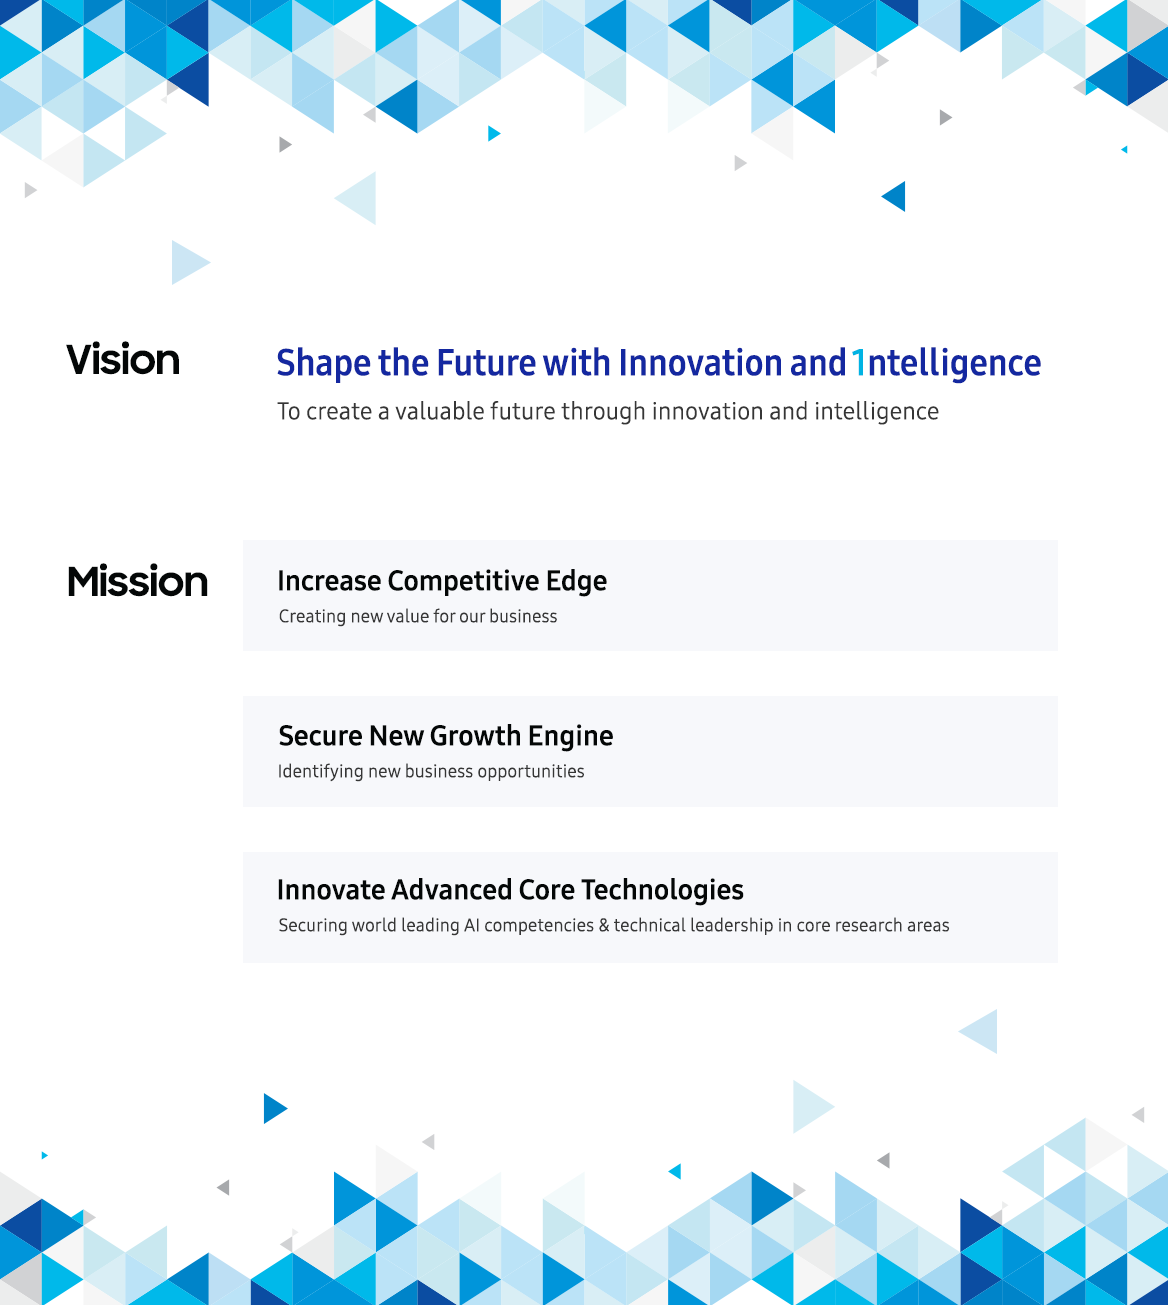 Vision : Shape the Futrue with Innovation and 1ntelligence. To create a valuable future through innovation and intelligence. Mssion : Increase Competitive Edge. Creating new value for our business. Secure New Growth Engine. Identifying new business opportunities. Innovate Advanced Core Technologies. Securing world leading AI competencies & technical leadership in core research areas.